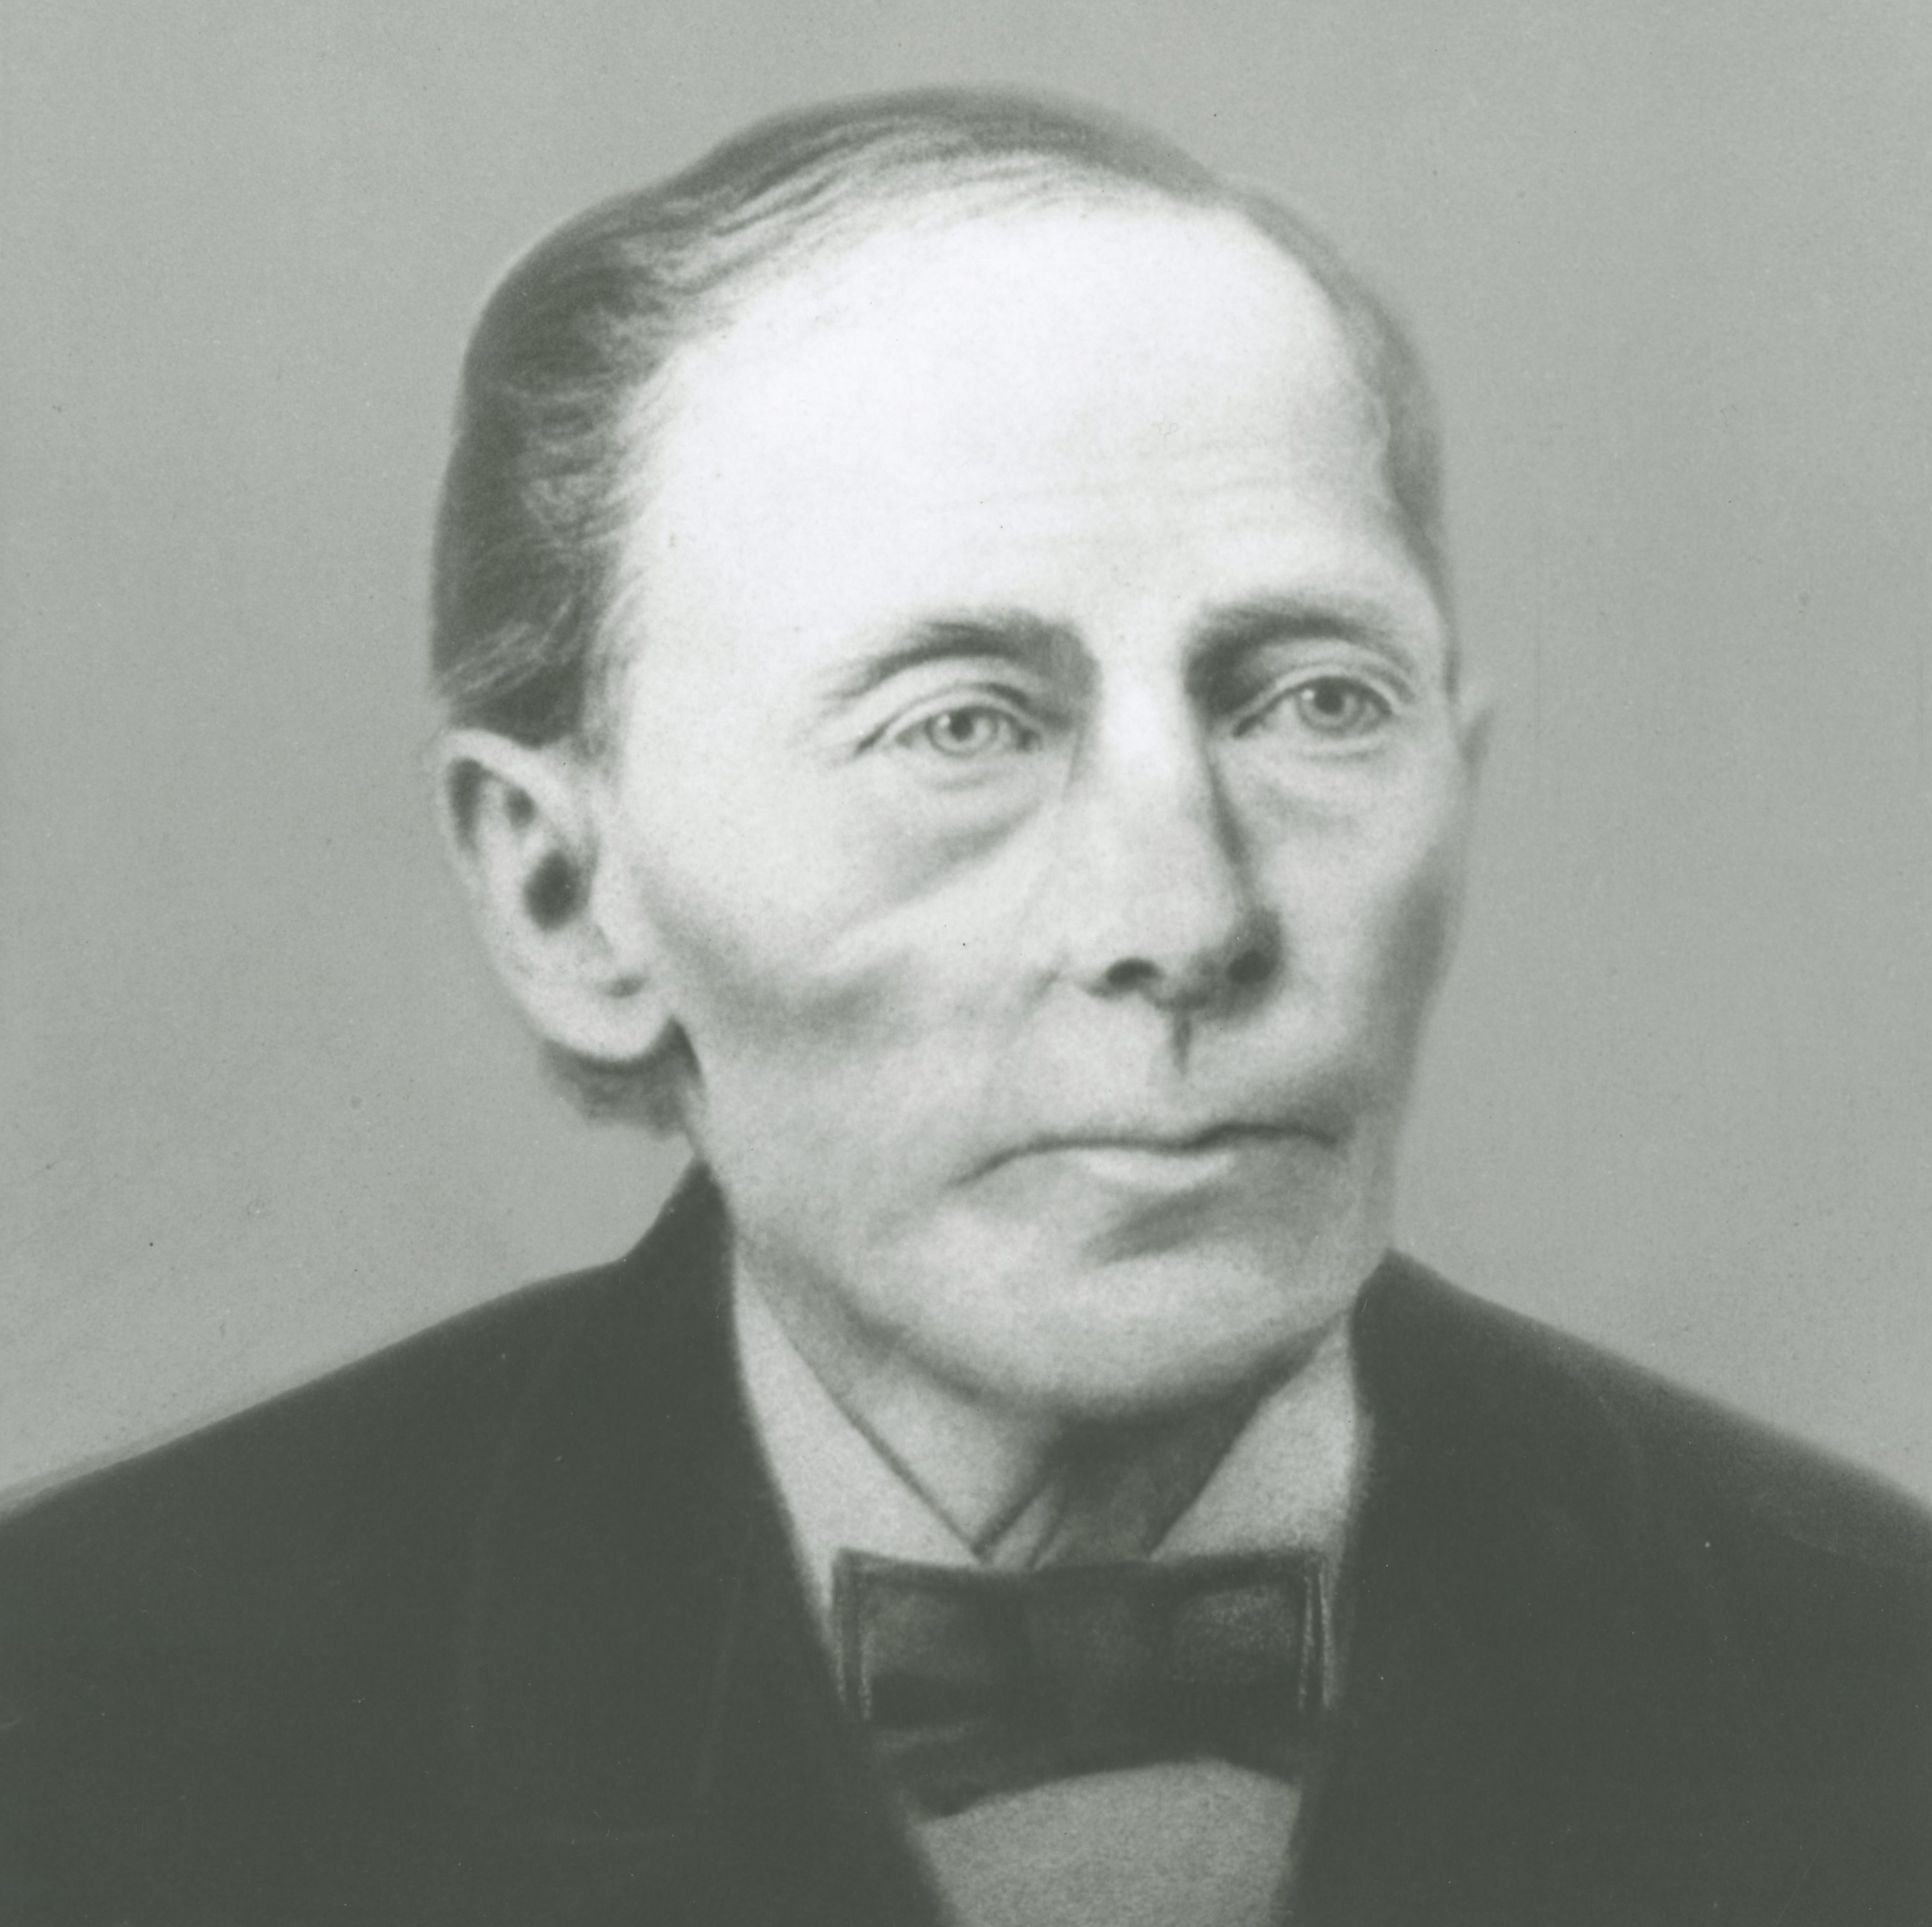 Cyrus H. Wheelock in the 1890s